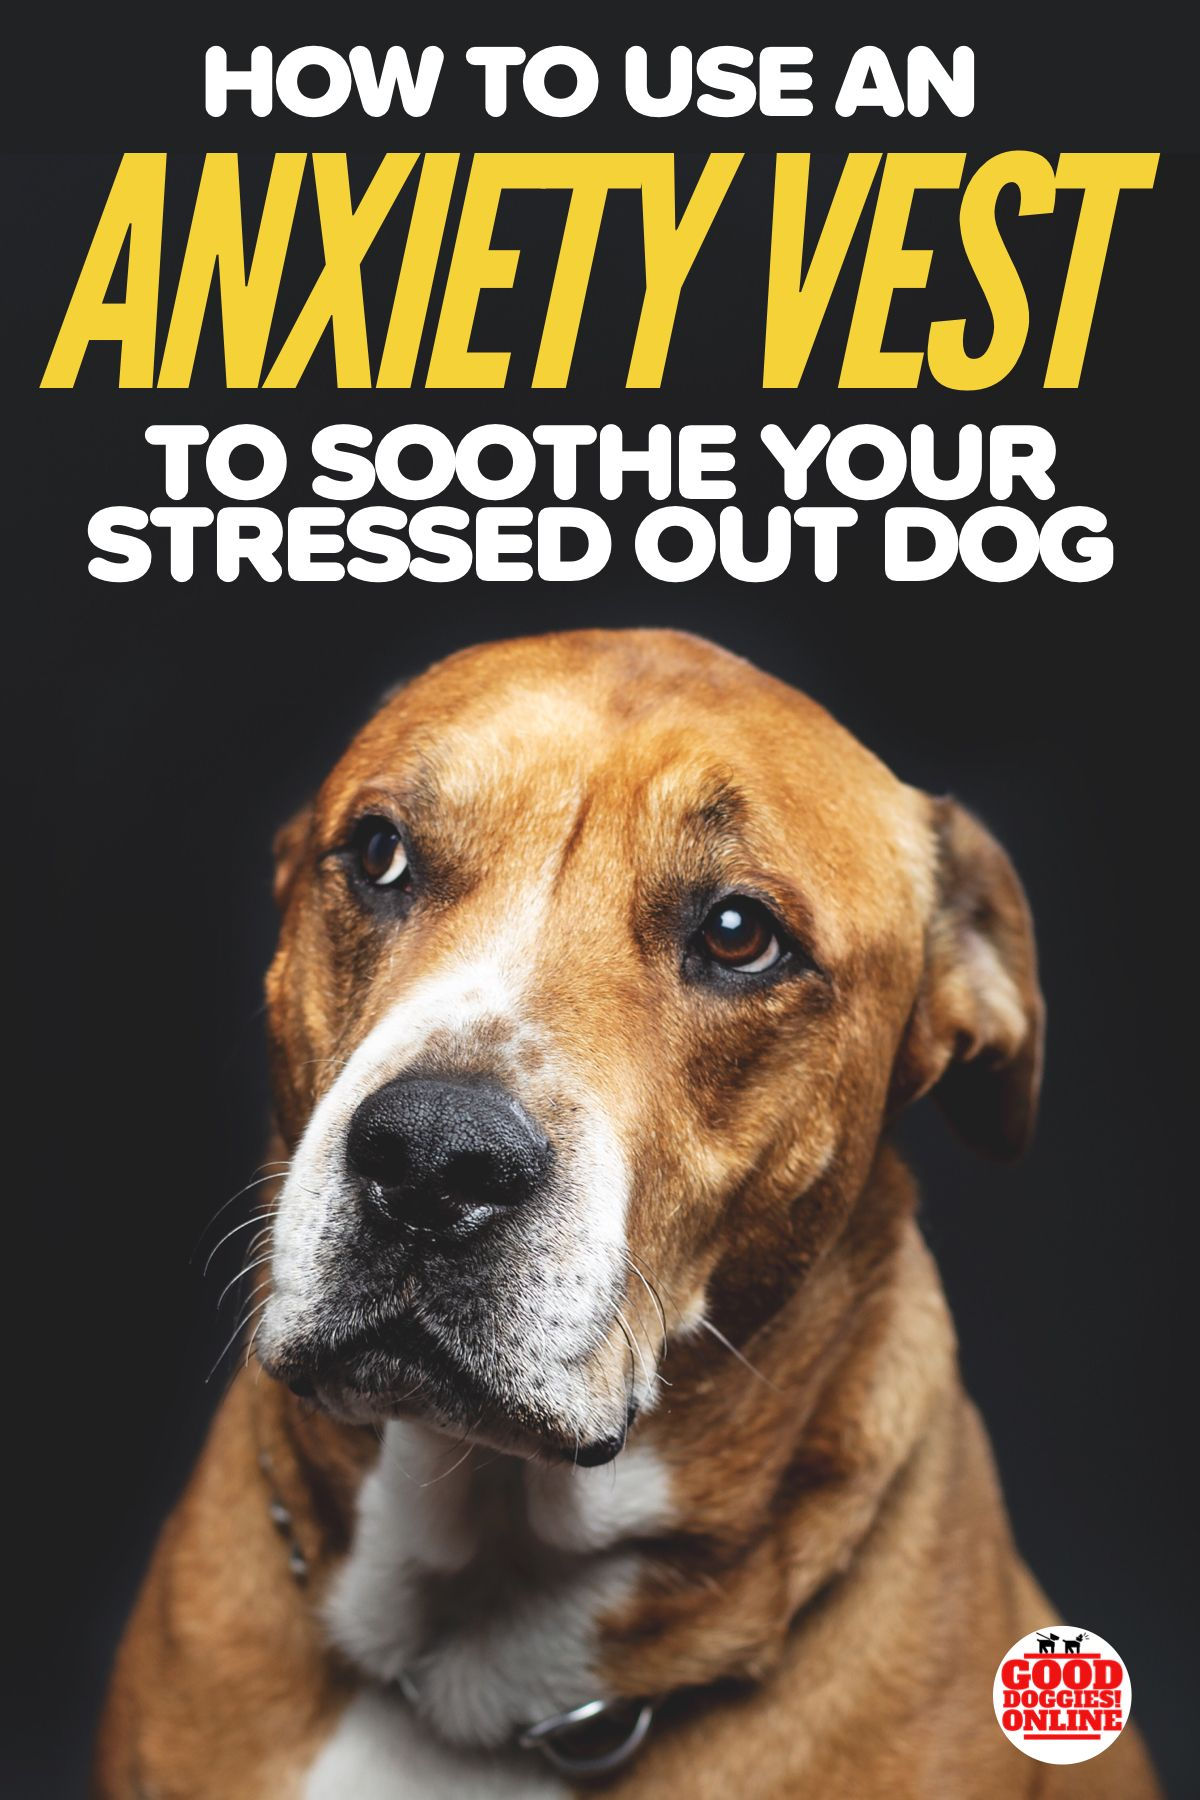 Discussion on this topic: How To Soothe a Stressed Pet, how-to-soothe-a-stressed-pet/